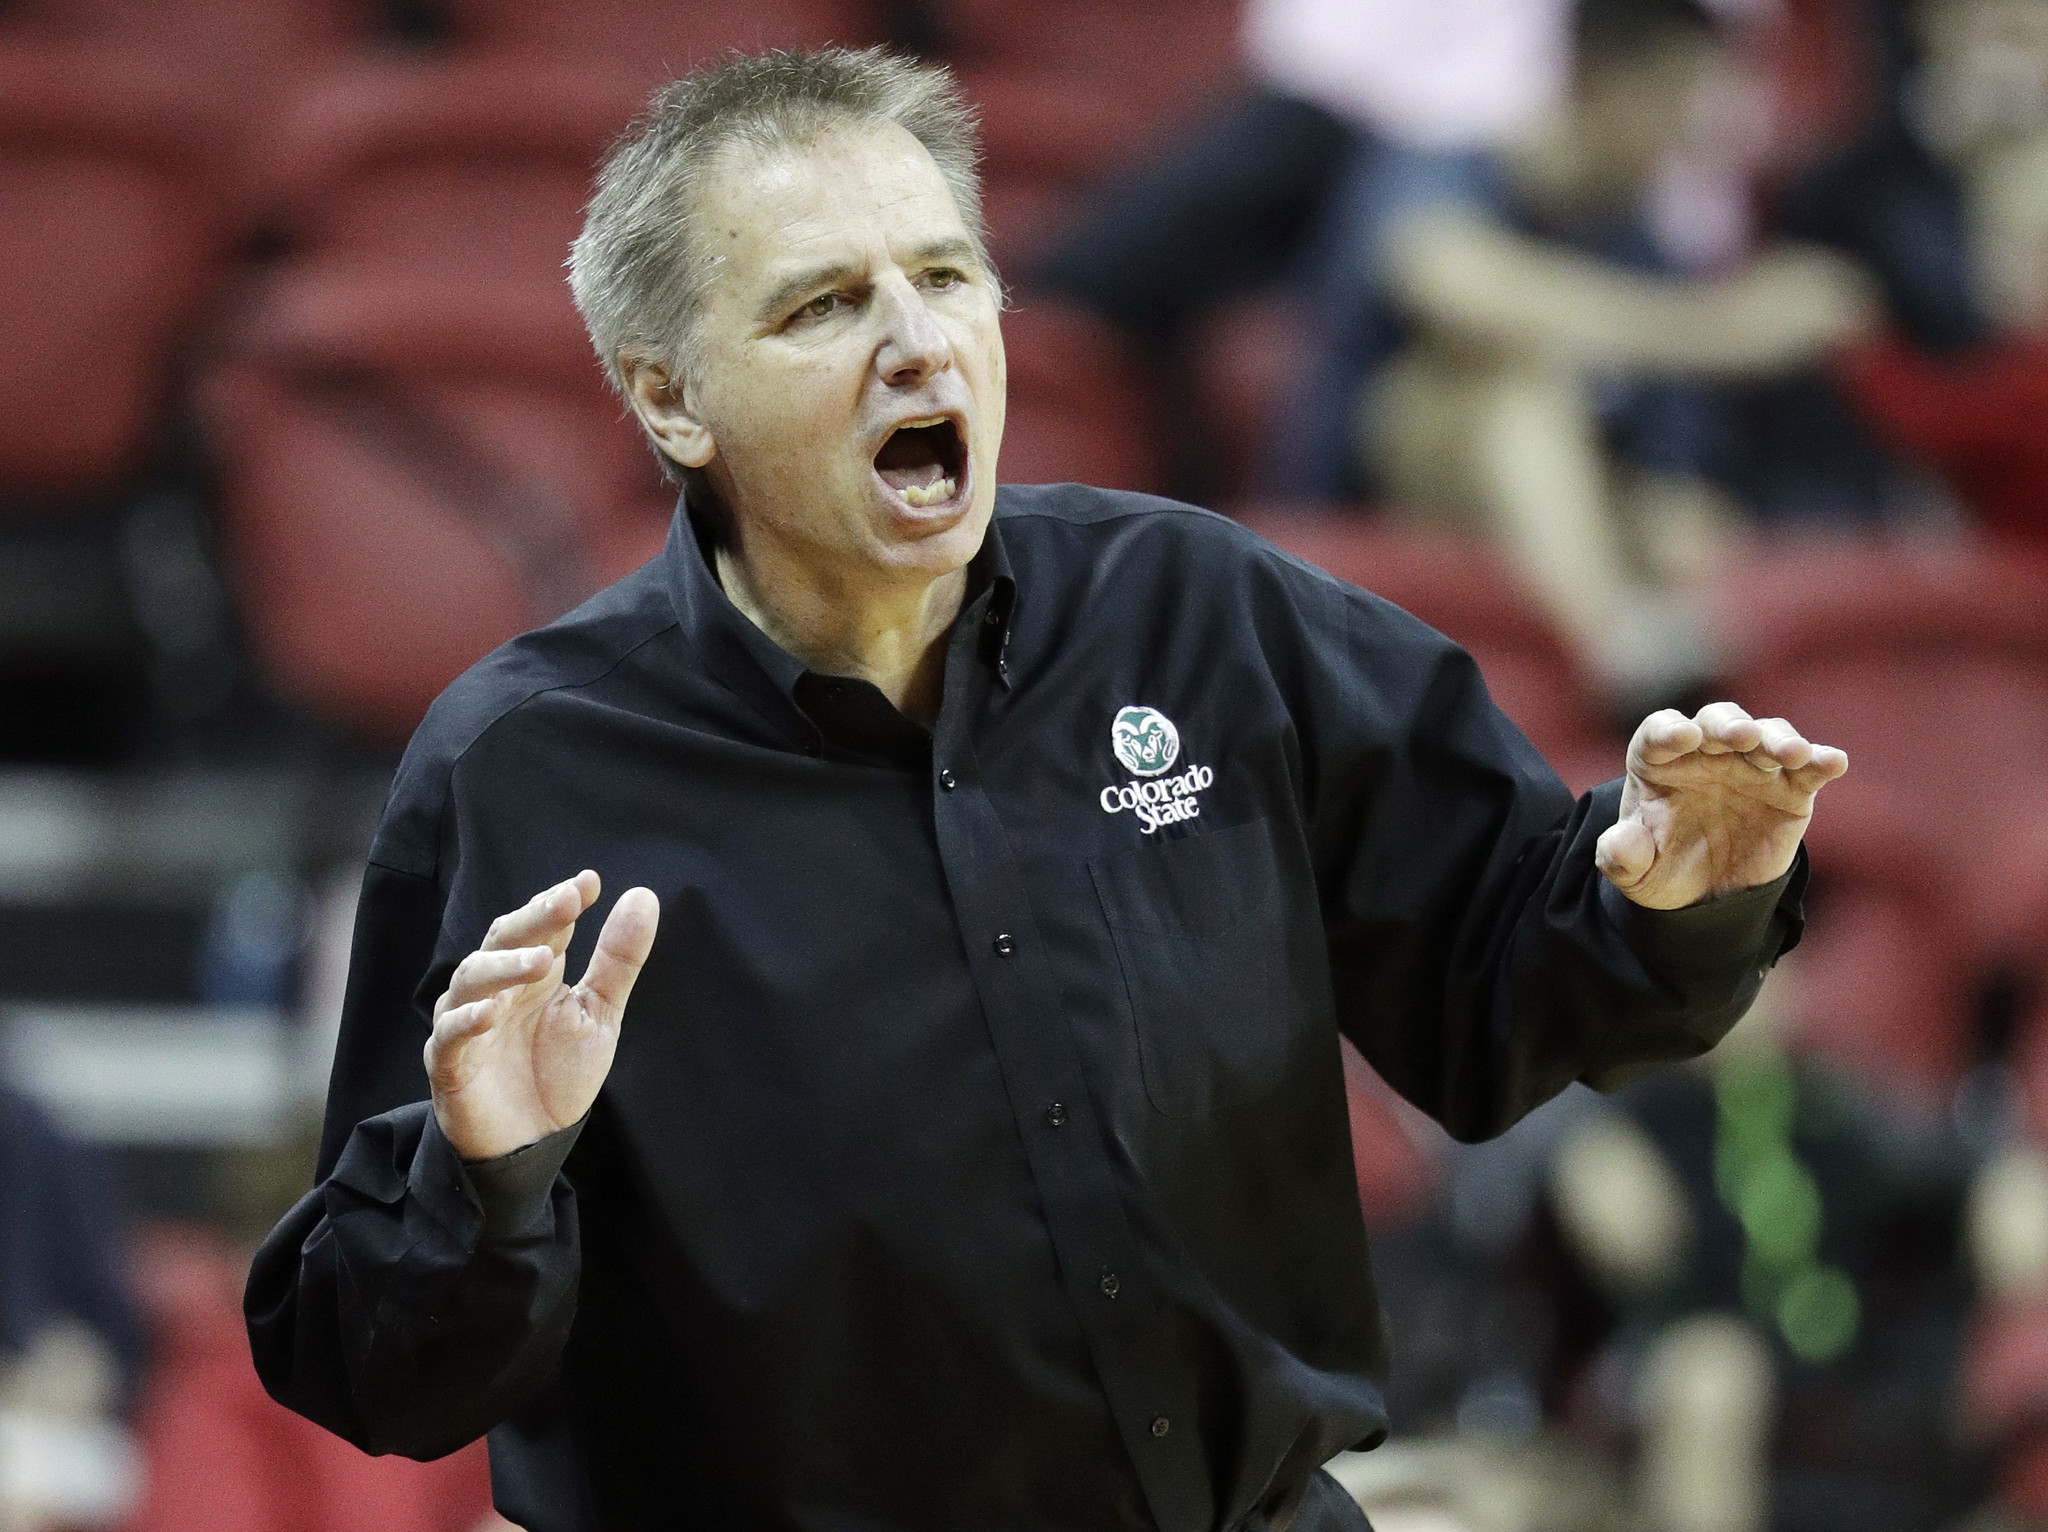 Ct-larry-eustachy-fear-and-intimidation-behavior-20170216